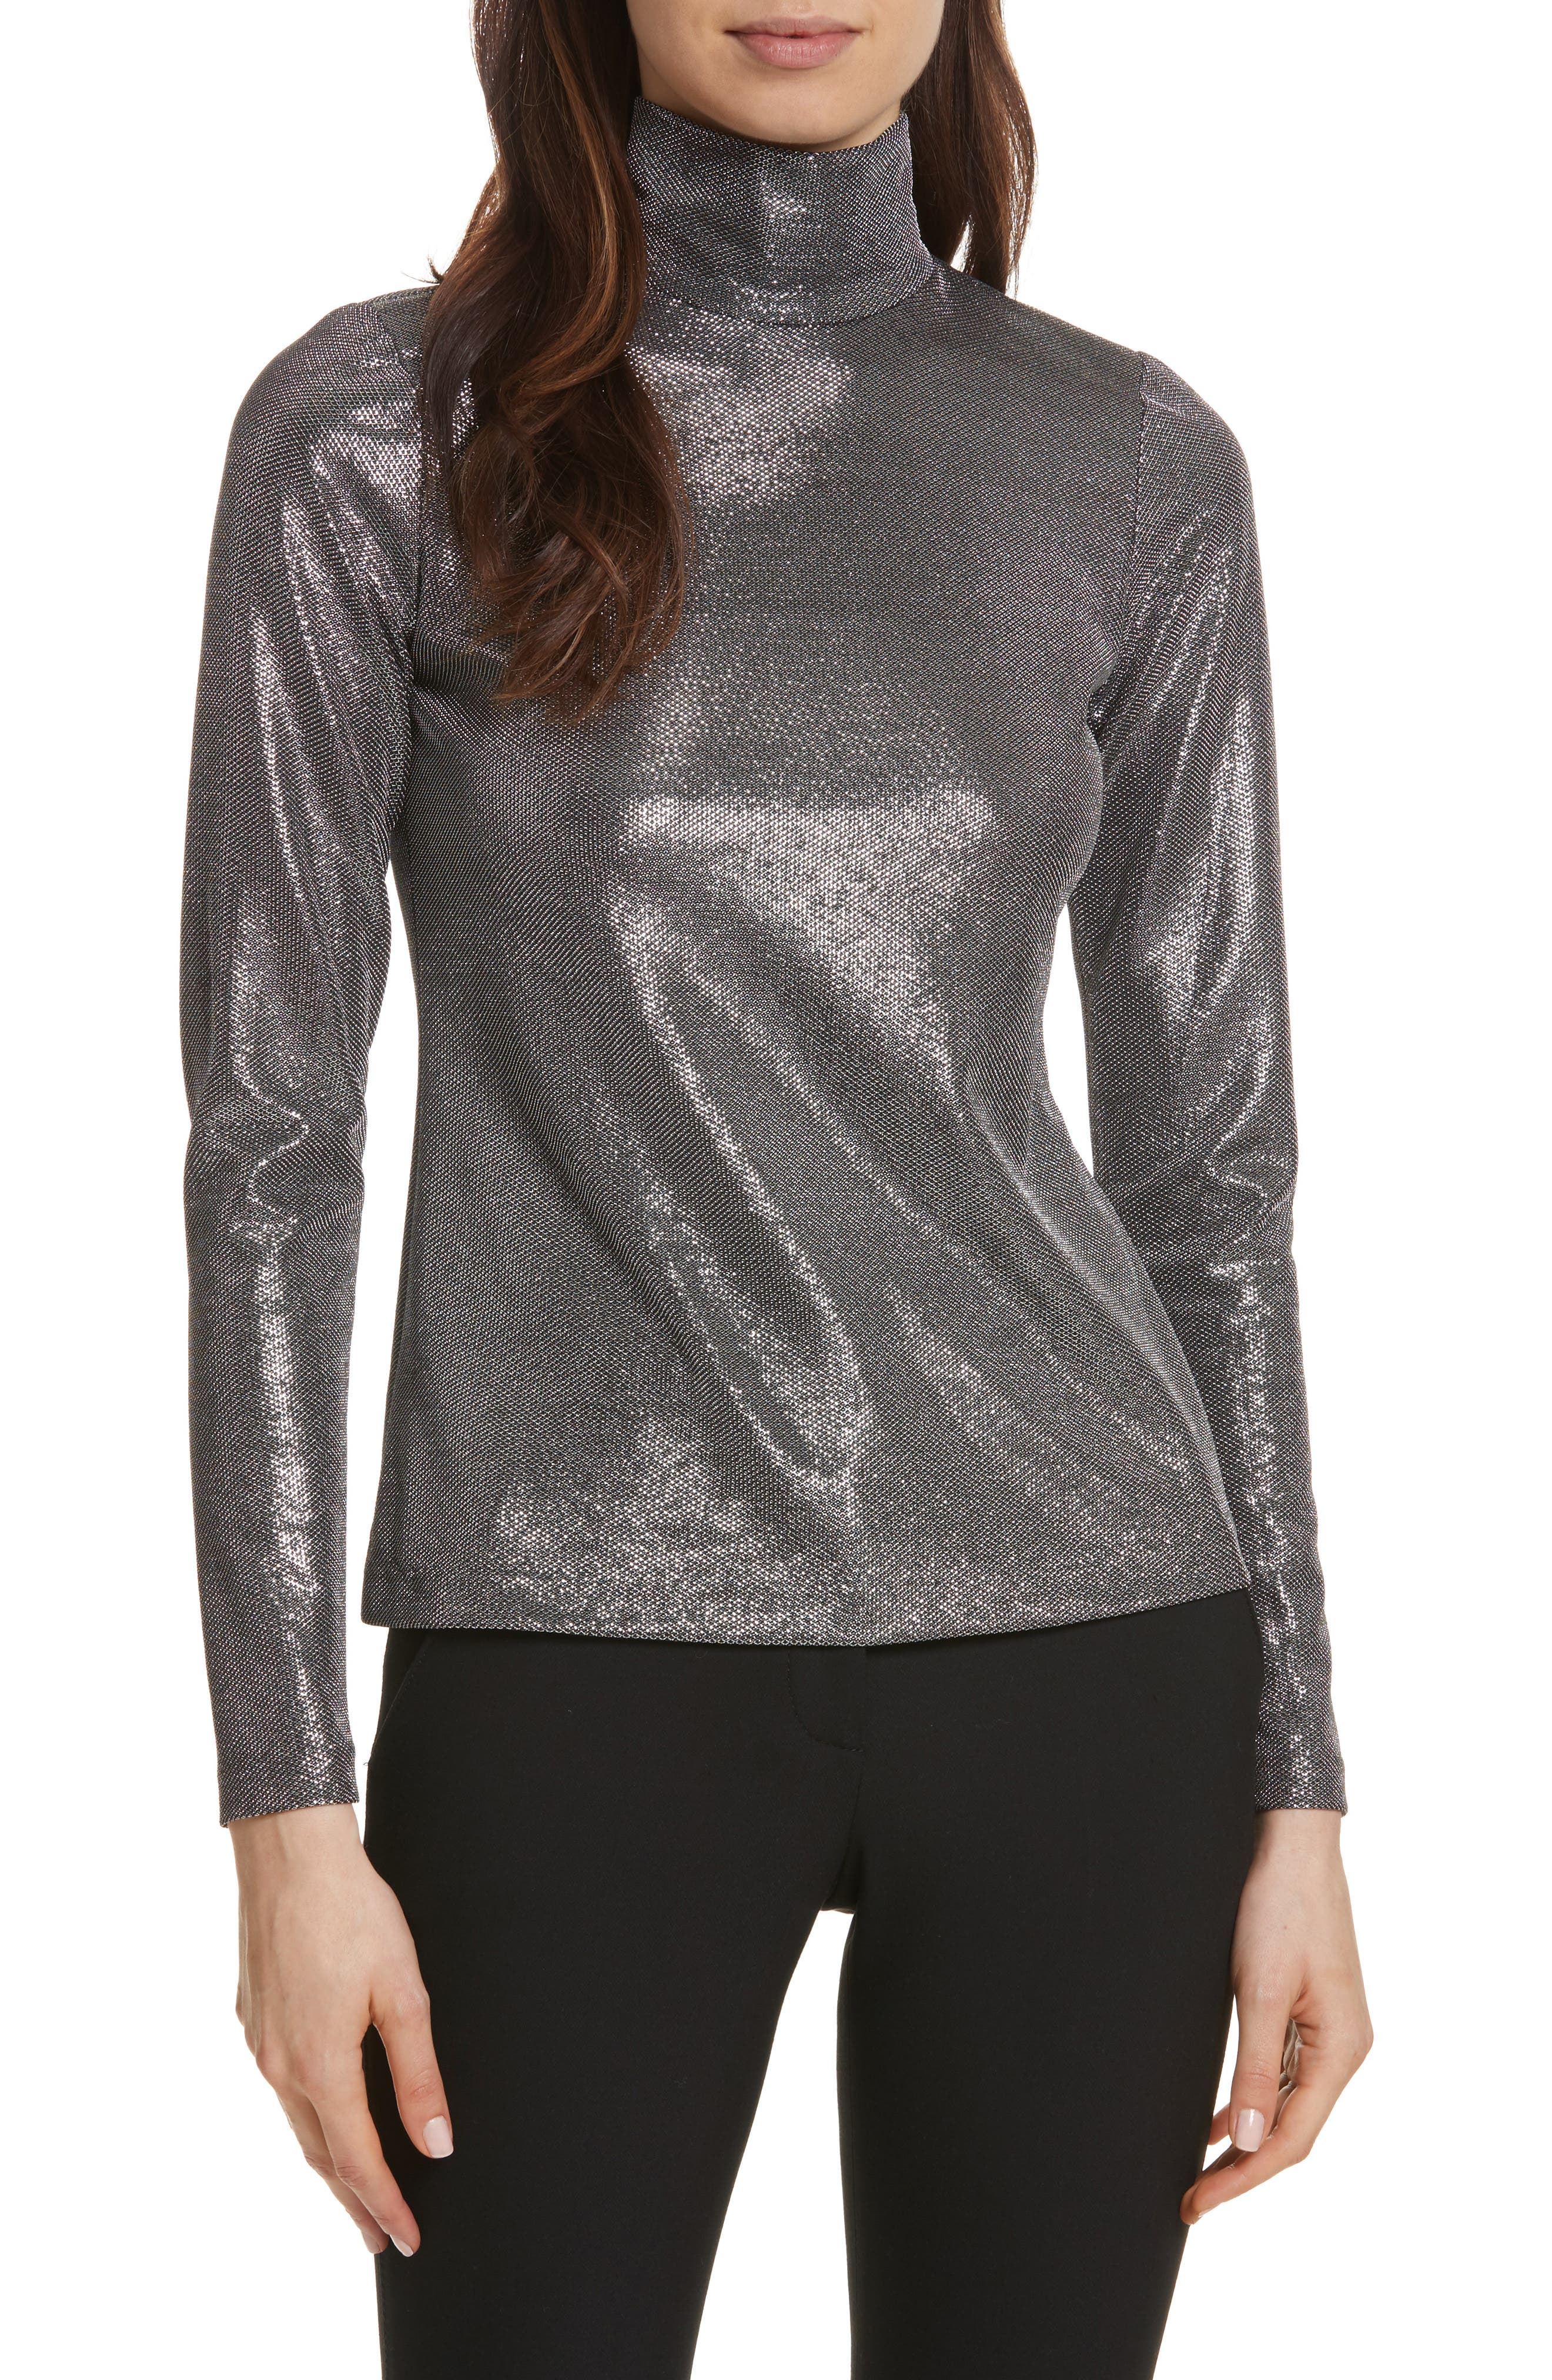 Silver Turtleneck Top,                             Main thumbnail 1, color,                             Antique Silver